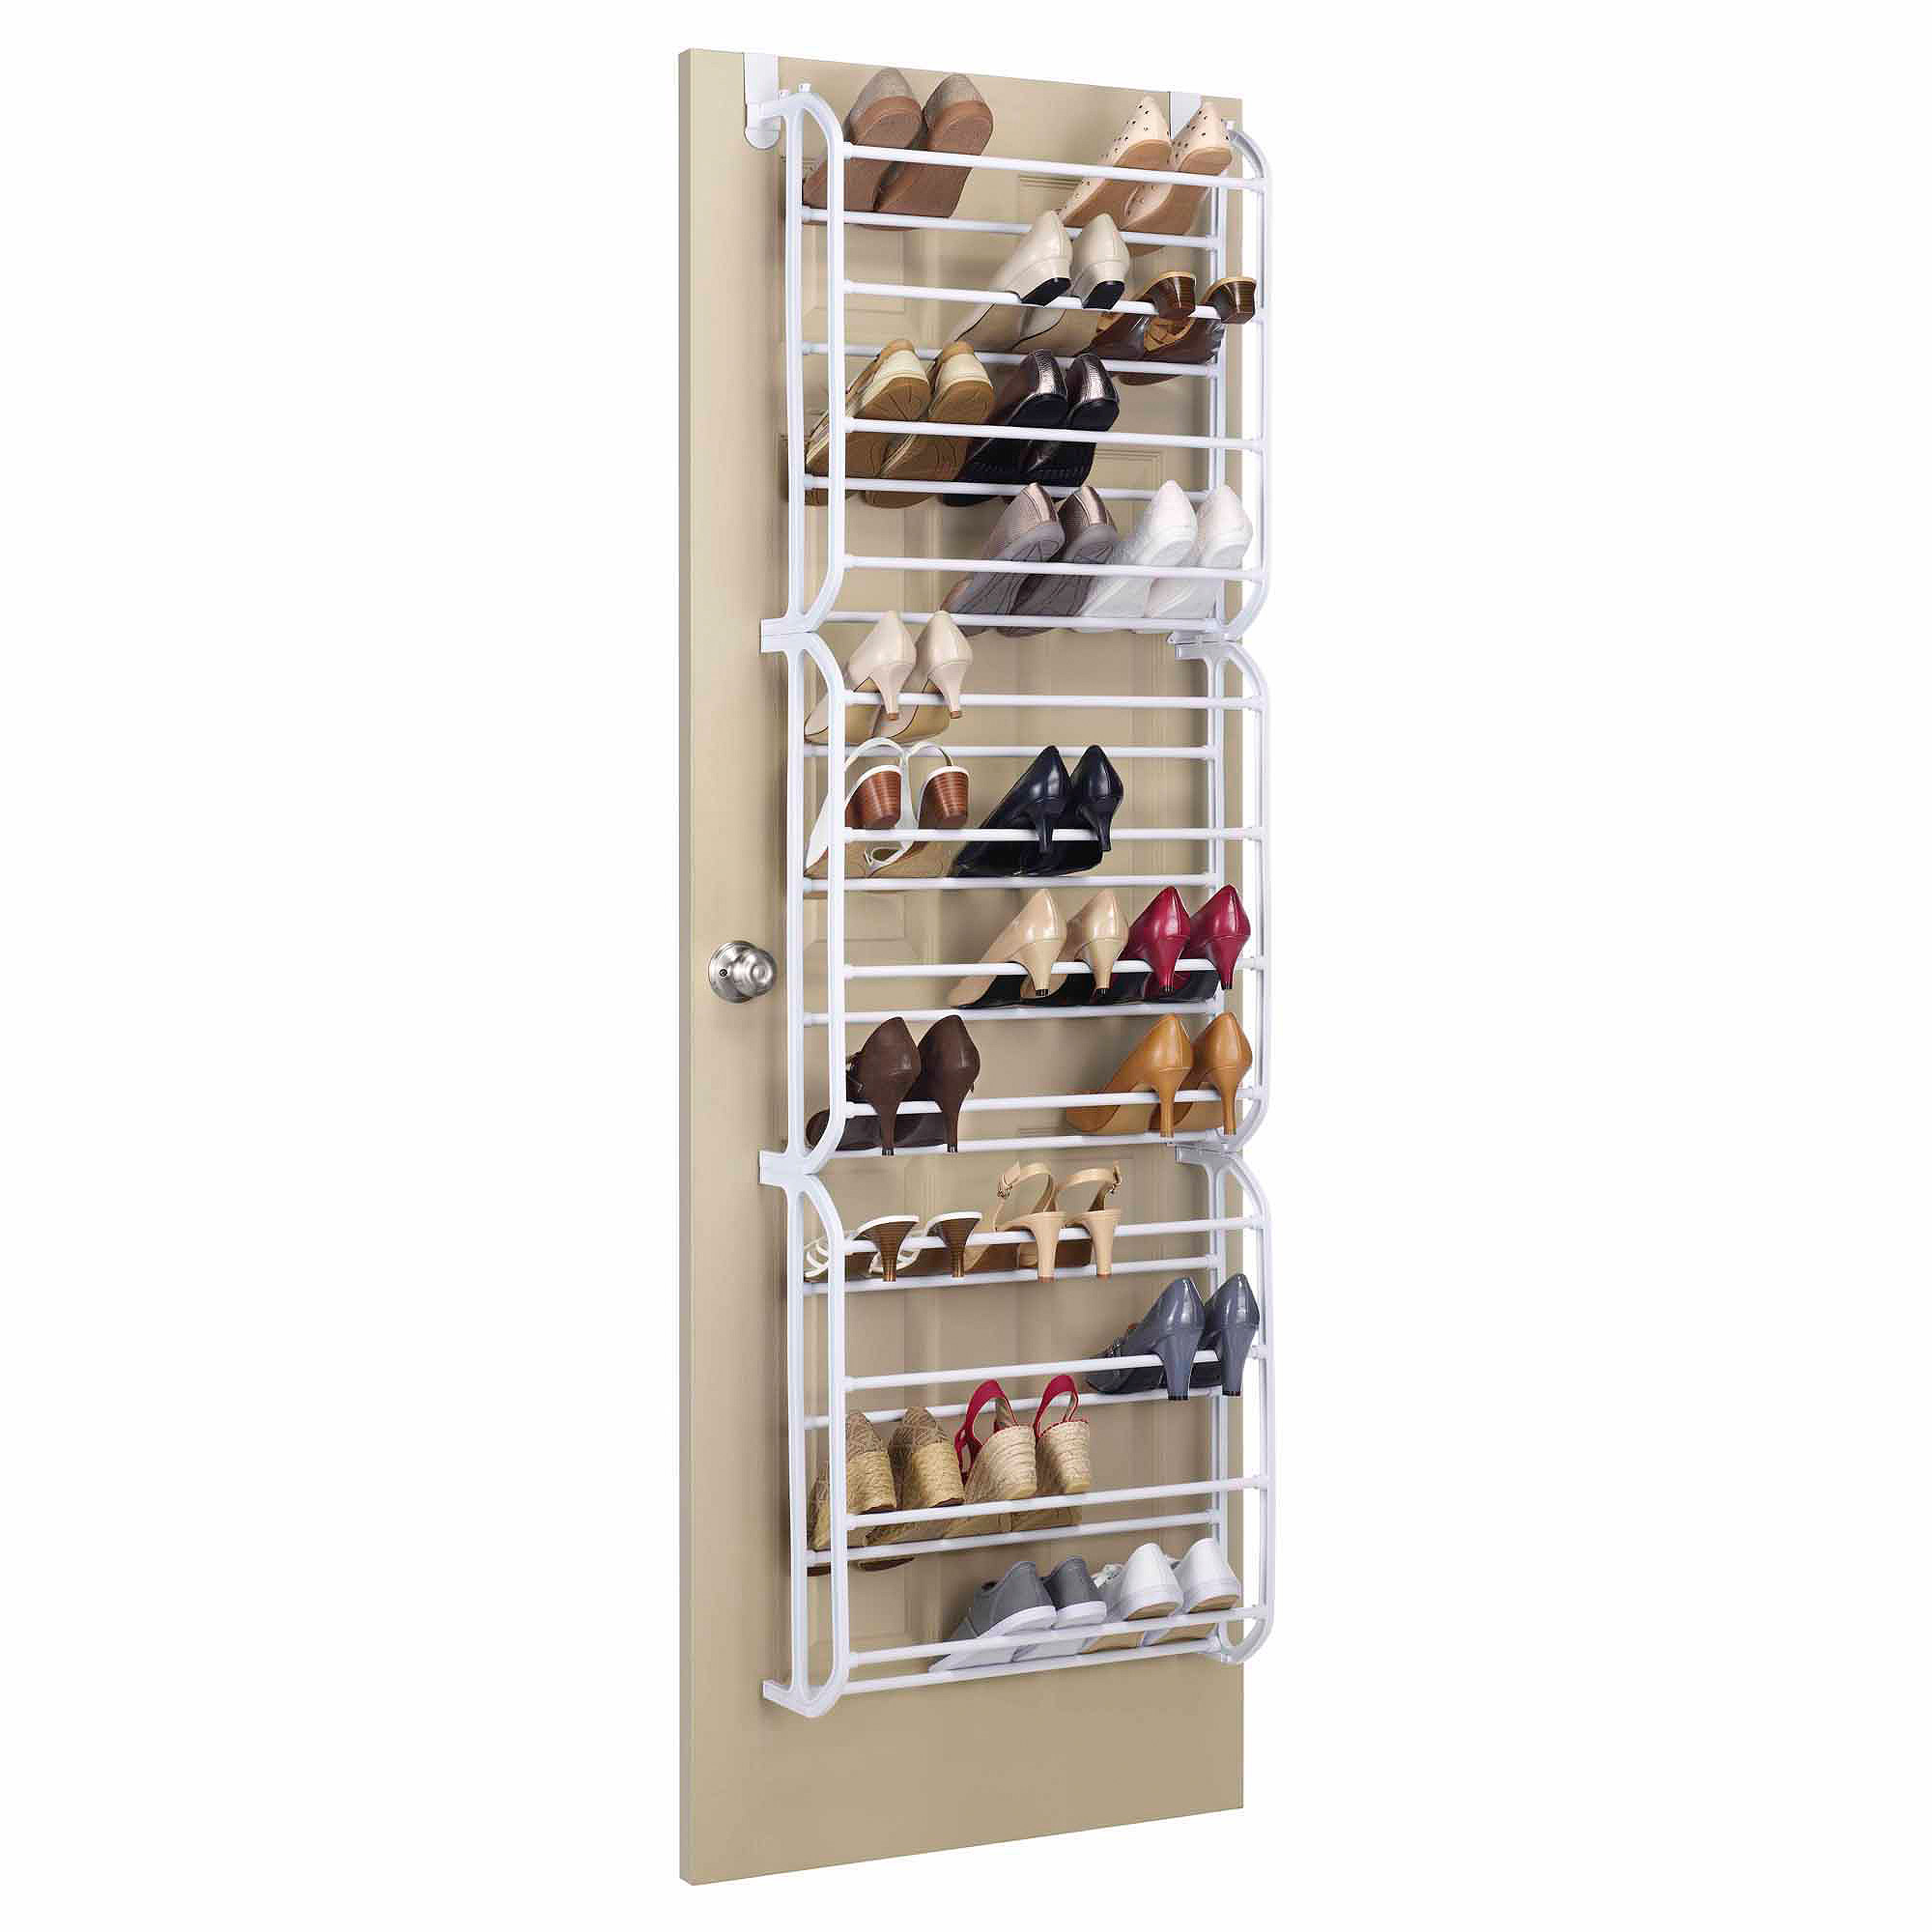 shoe racks whitmor 36-pair over-the-door shoe rack - walmart.com PQHKVTQ